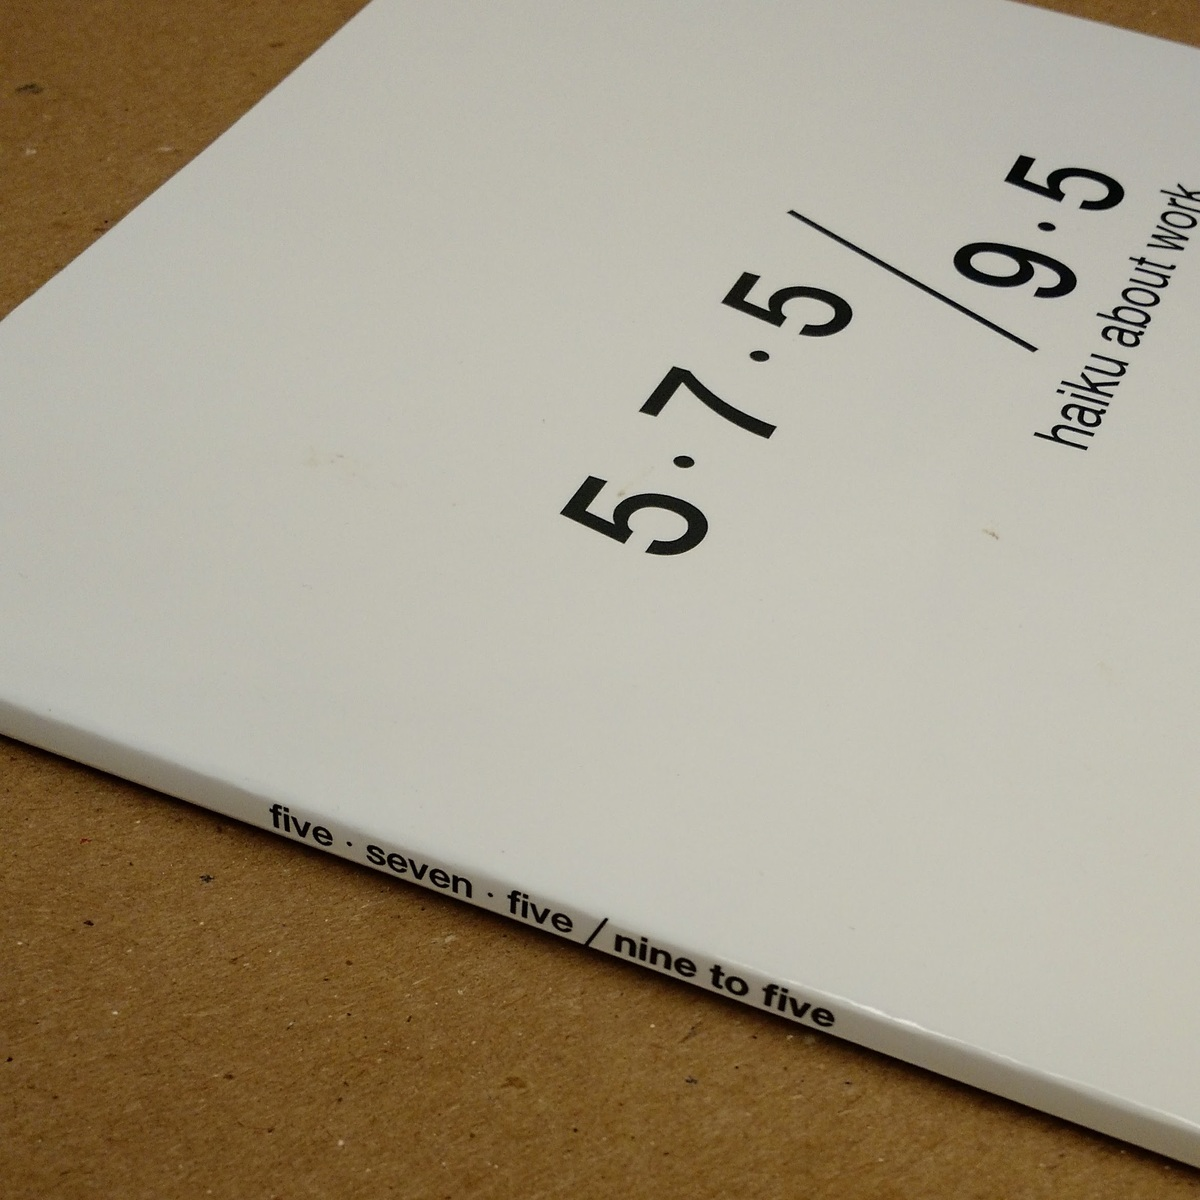 'Five Seven Five: Nine to Five,' courtesy of the authors.